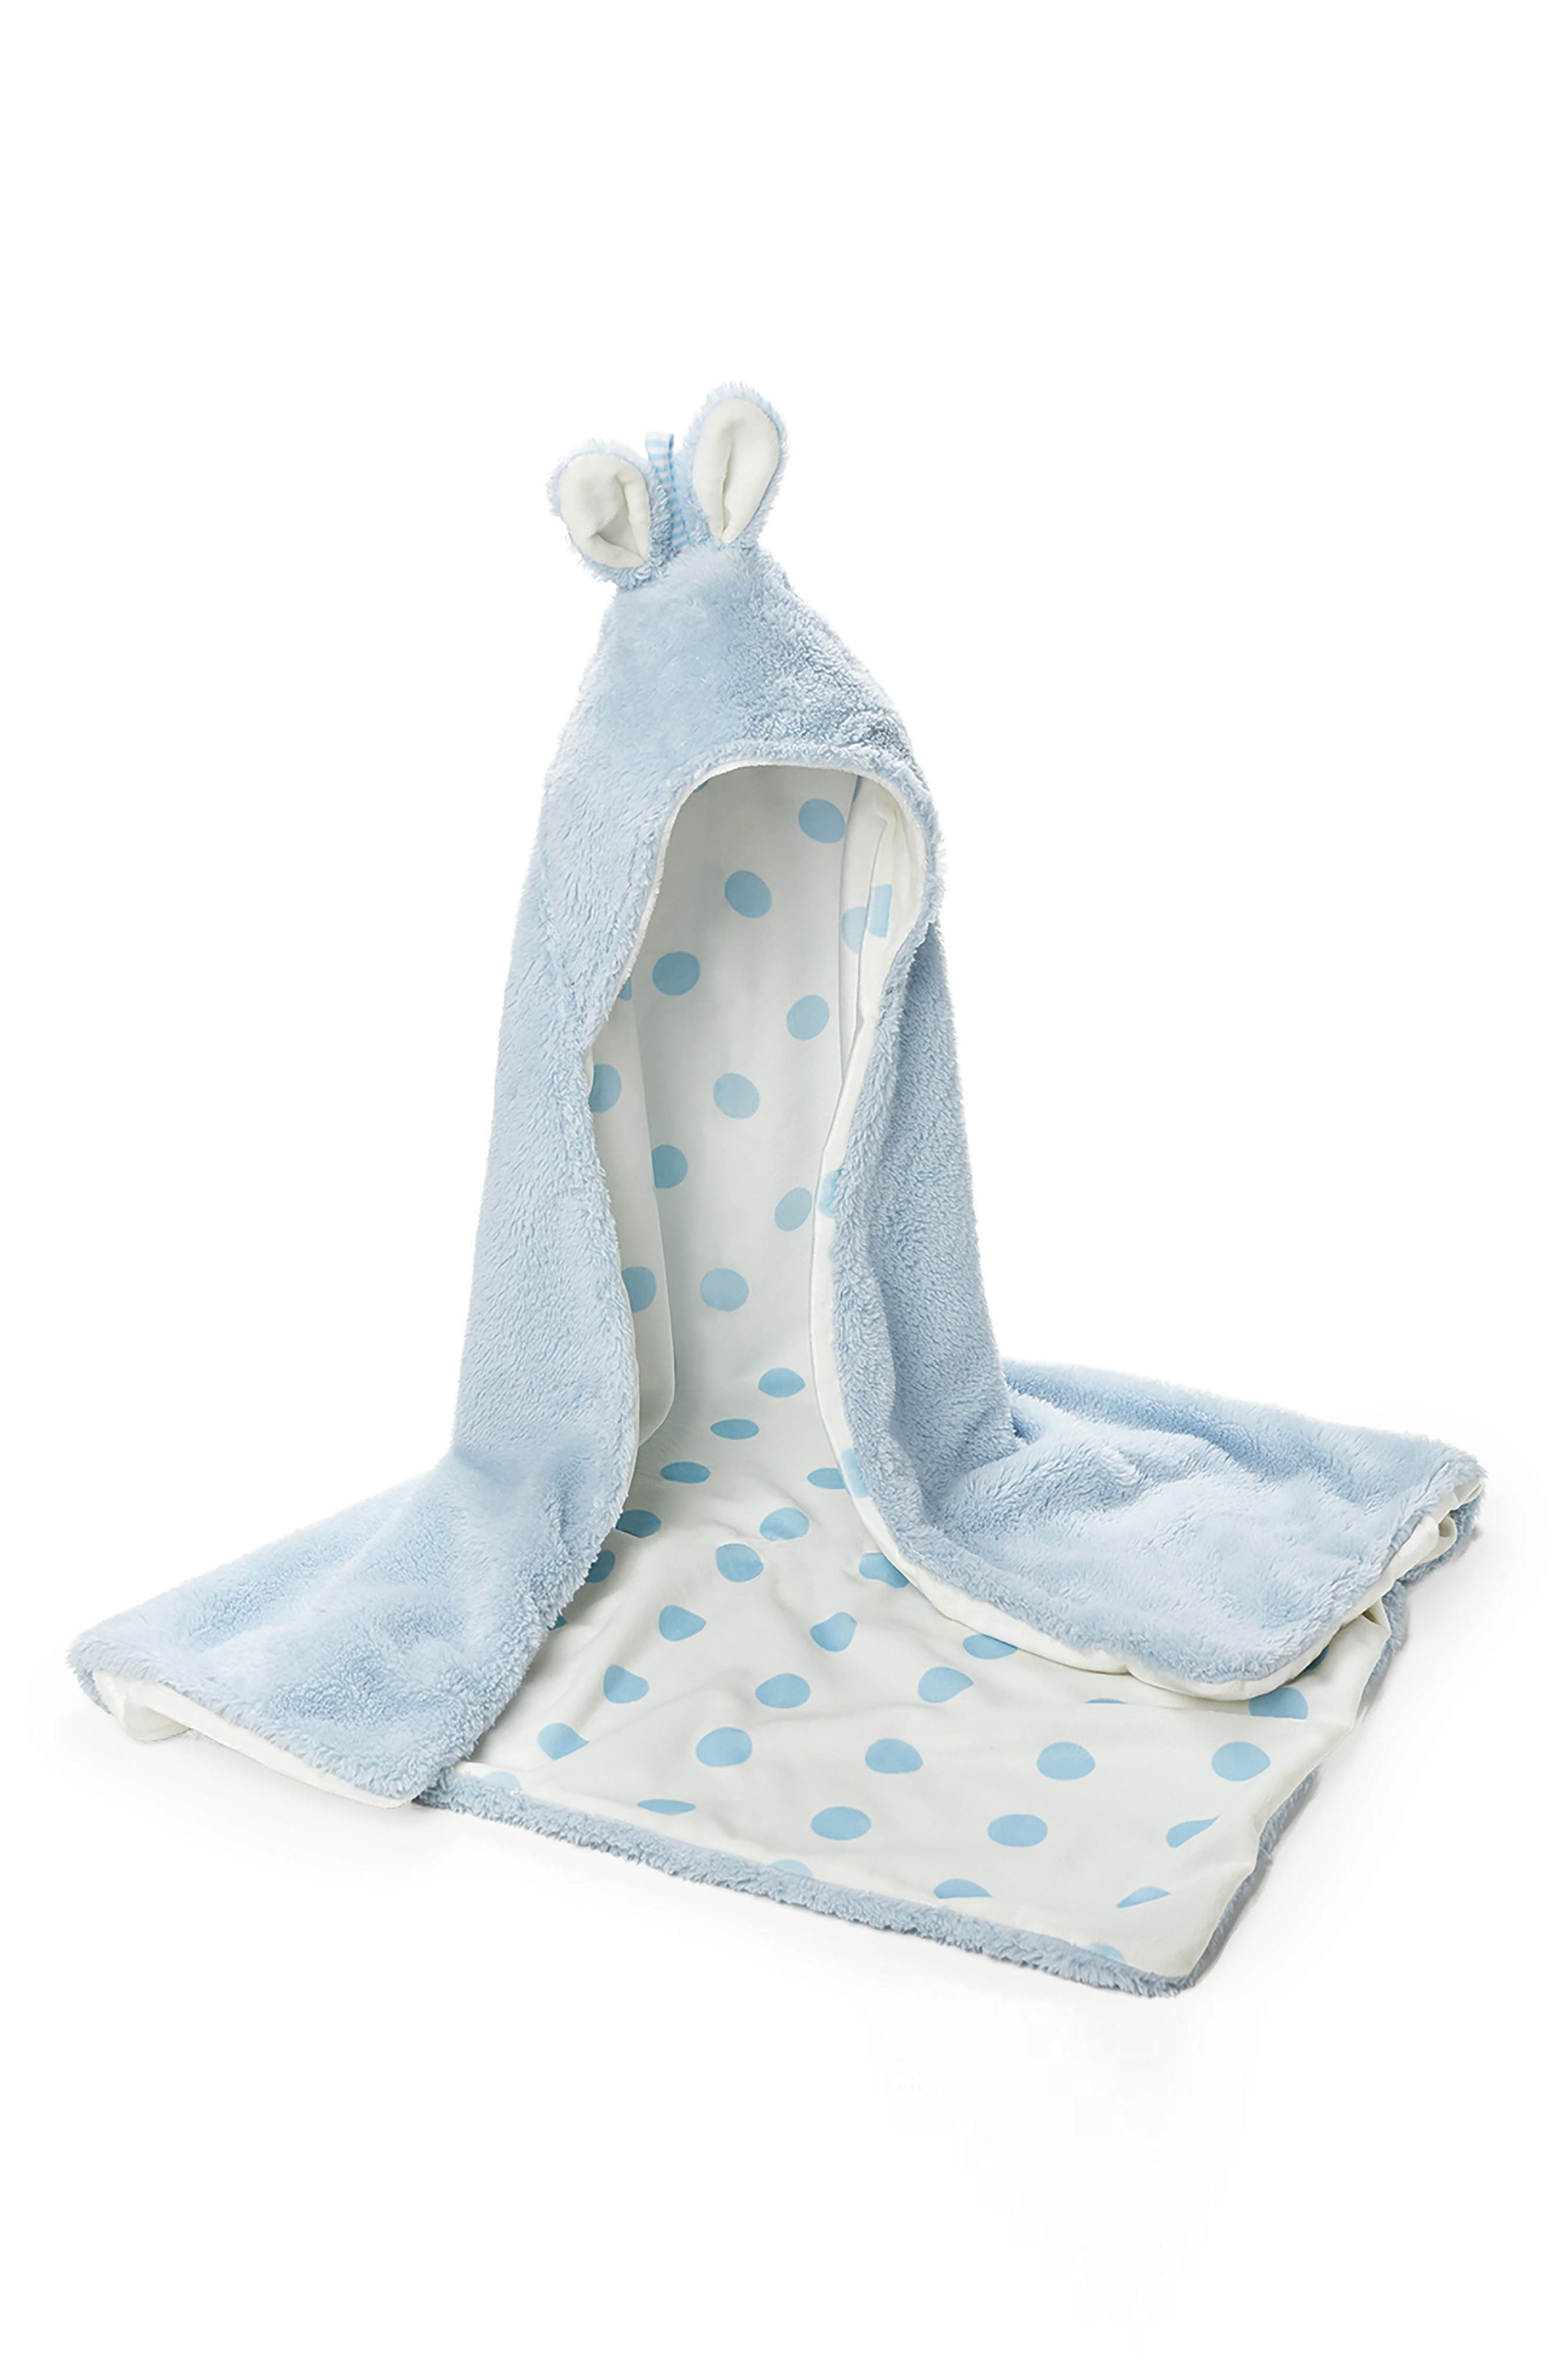 Alternate Image 1 Selected - Bunnies By The Bay Bunny Hooded Blanket